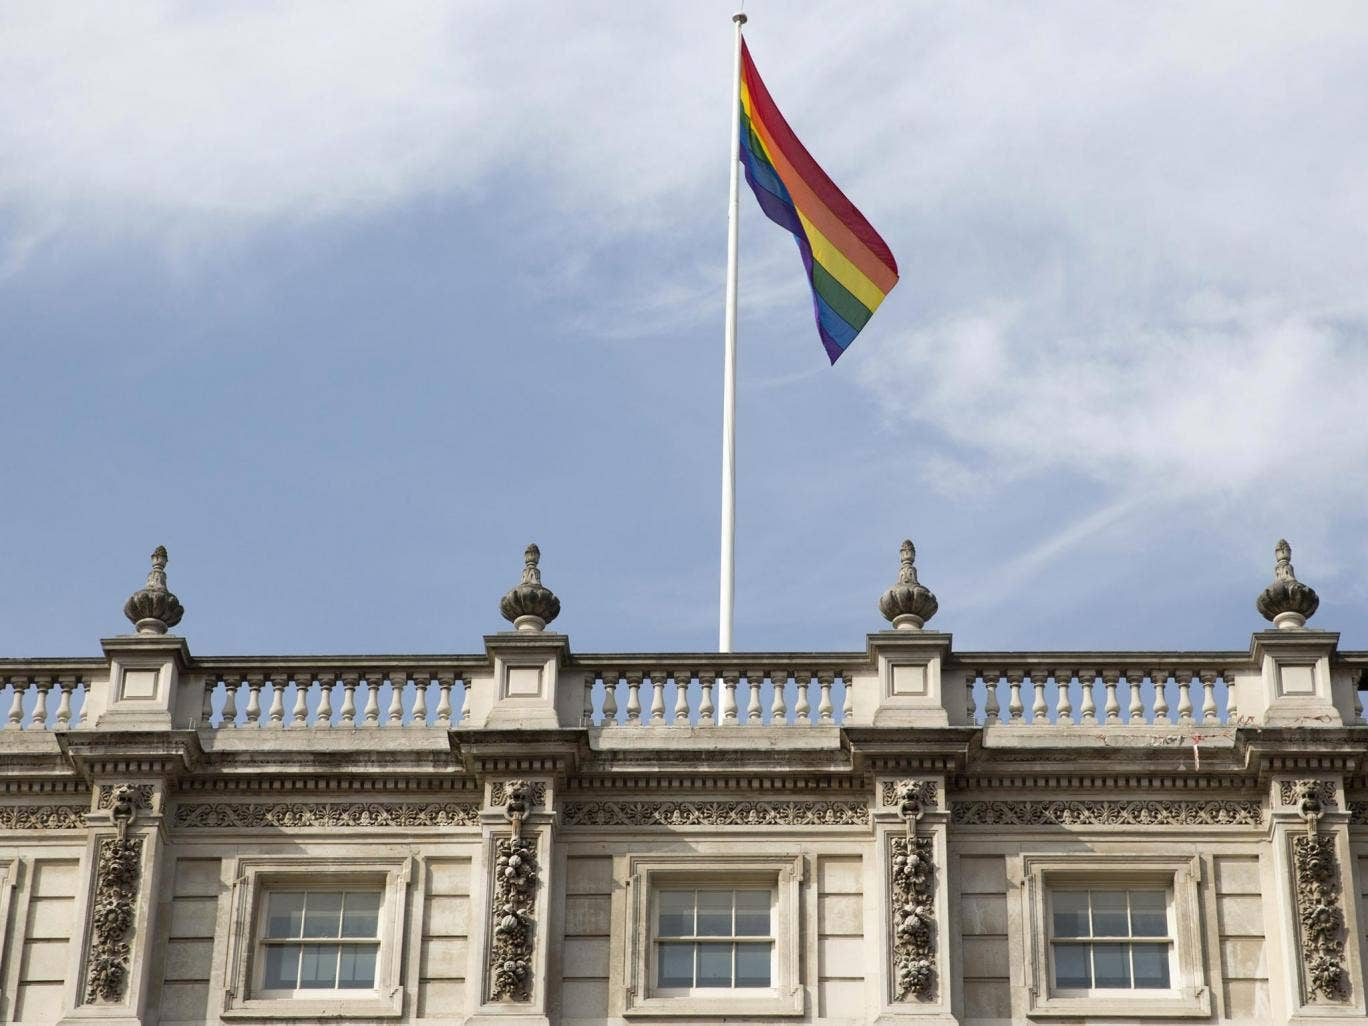 The rainbow flag flies above British Cabinet Offices, marking the first day Britain has allowed same sex marriages, in London